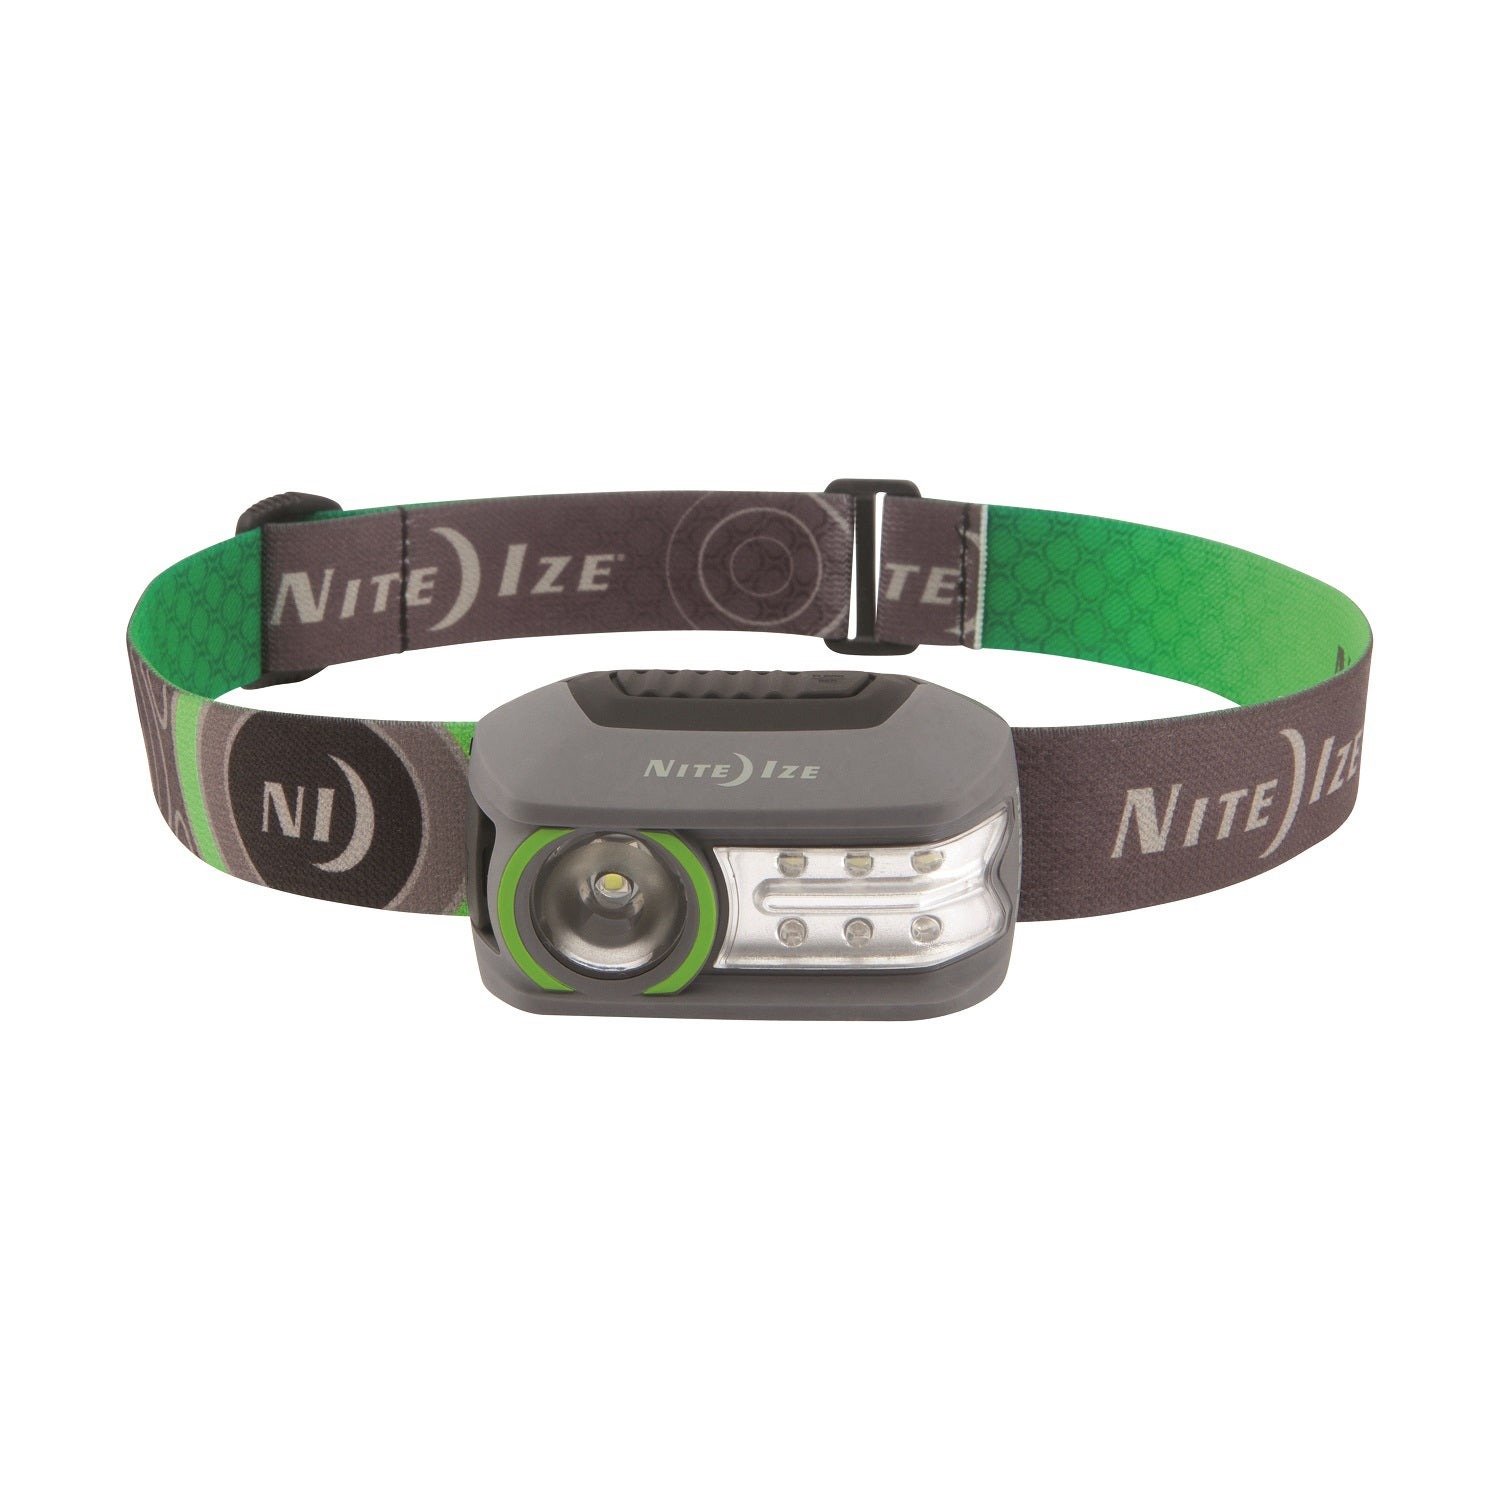 Nite Ize Radiant 250-lumen Rechargeable Headlamp (Gray/Gr...